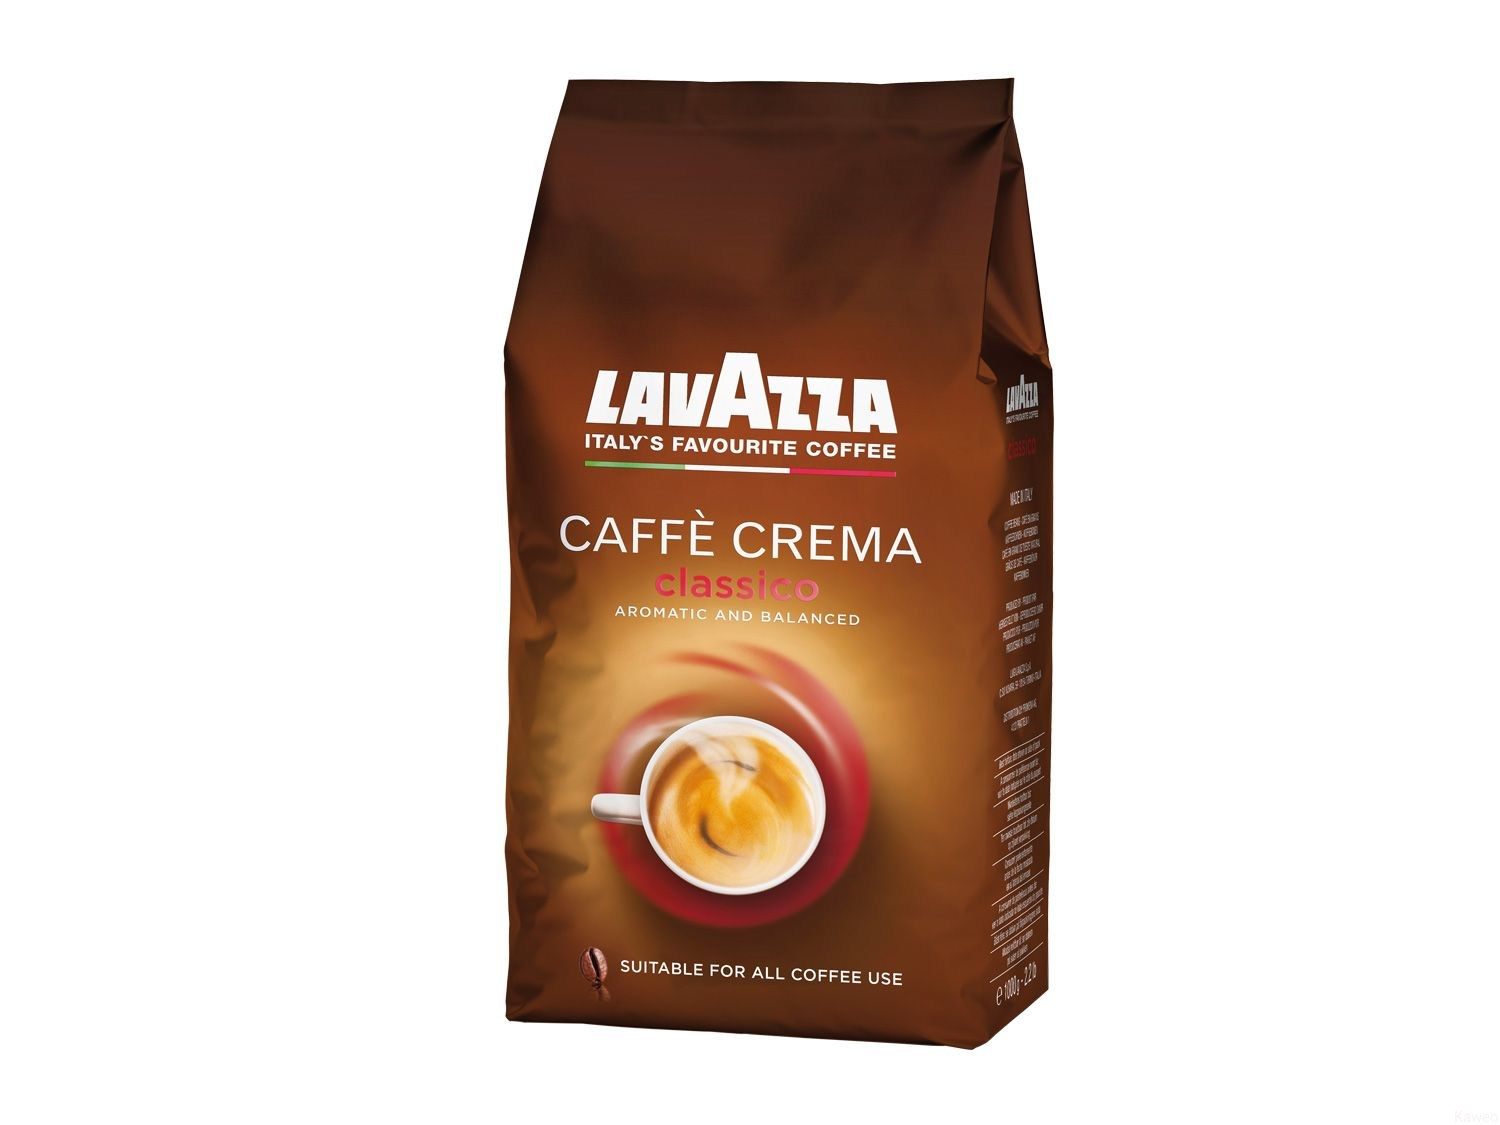 lavazza caffecrema classico kawa ziarnista 1kg. Black Bedroom Furniture Sets. Home Design Ideas